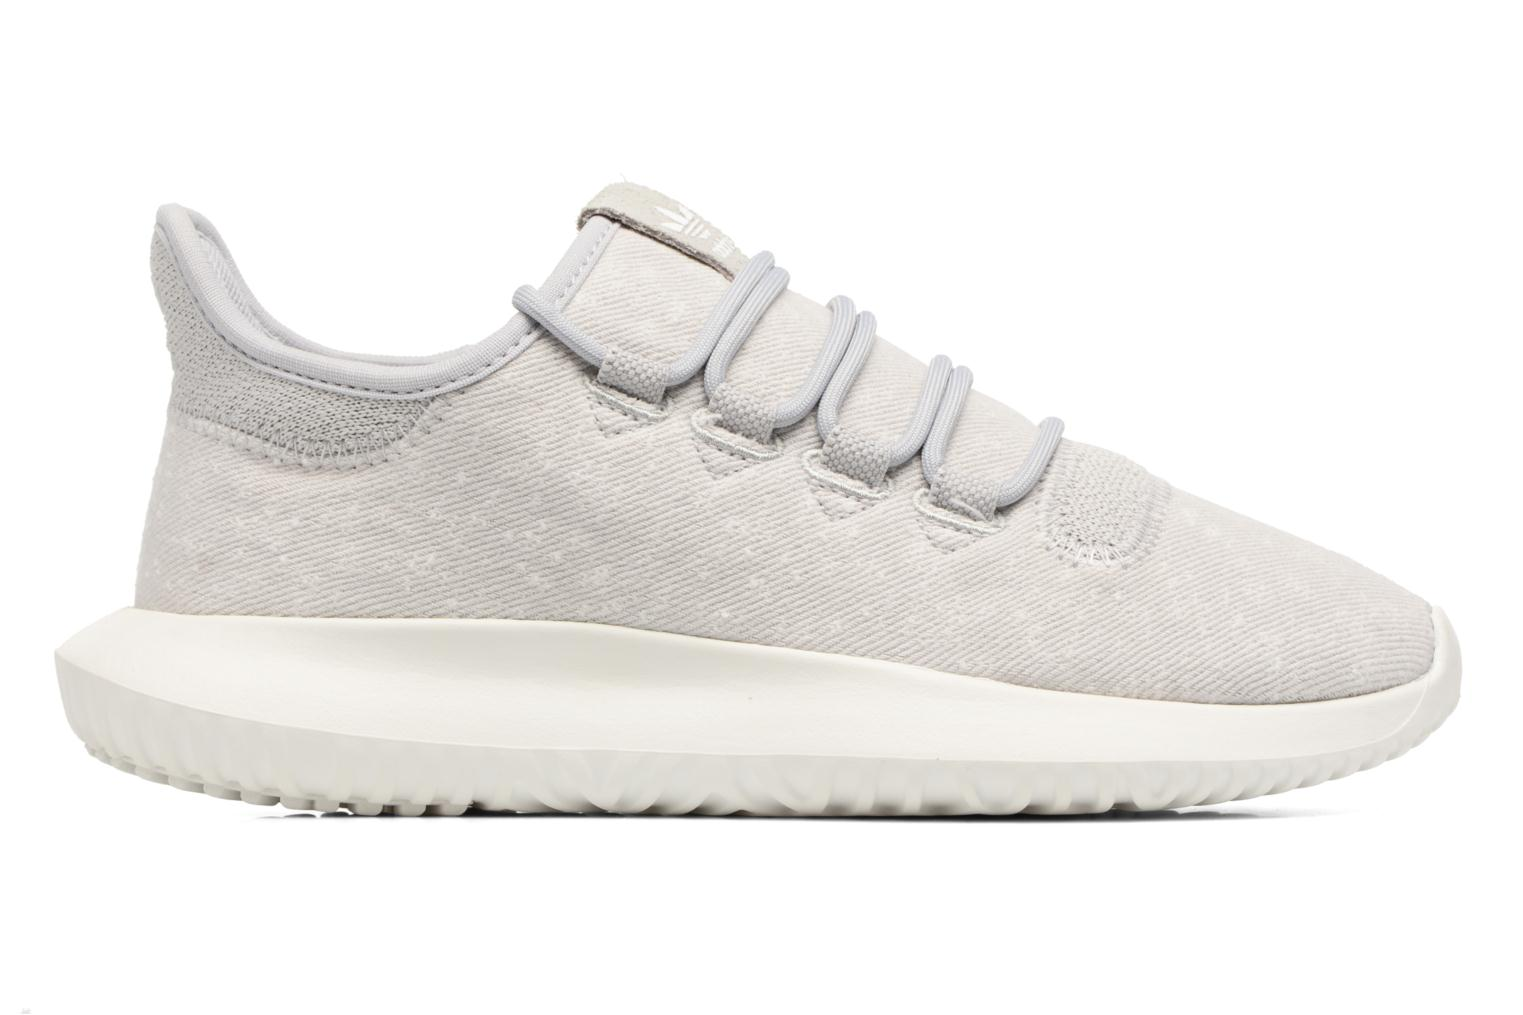 Baskets Adidas Originals Tubular Shadow J Gris vue derrière